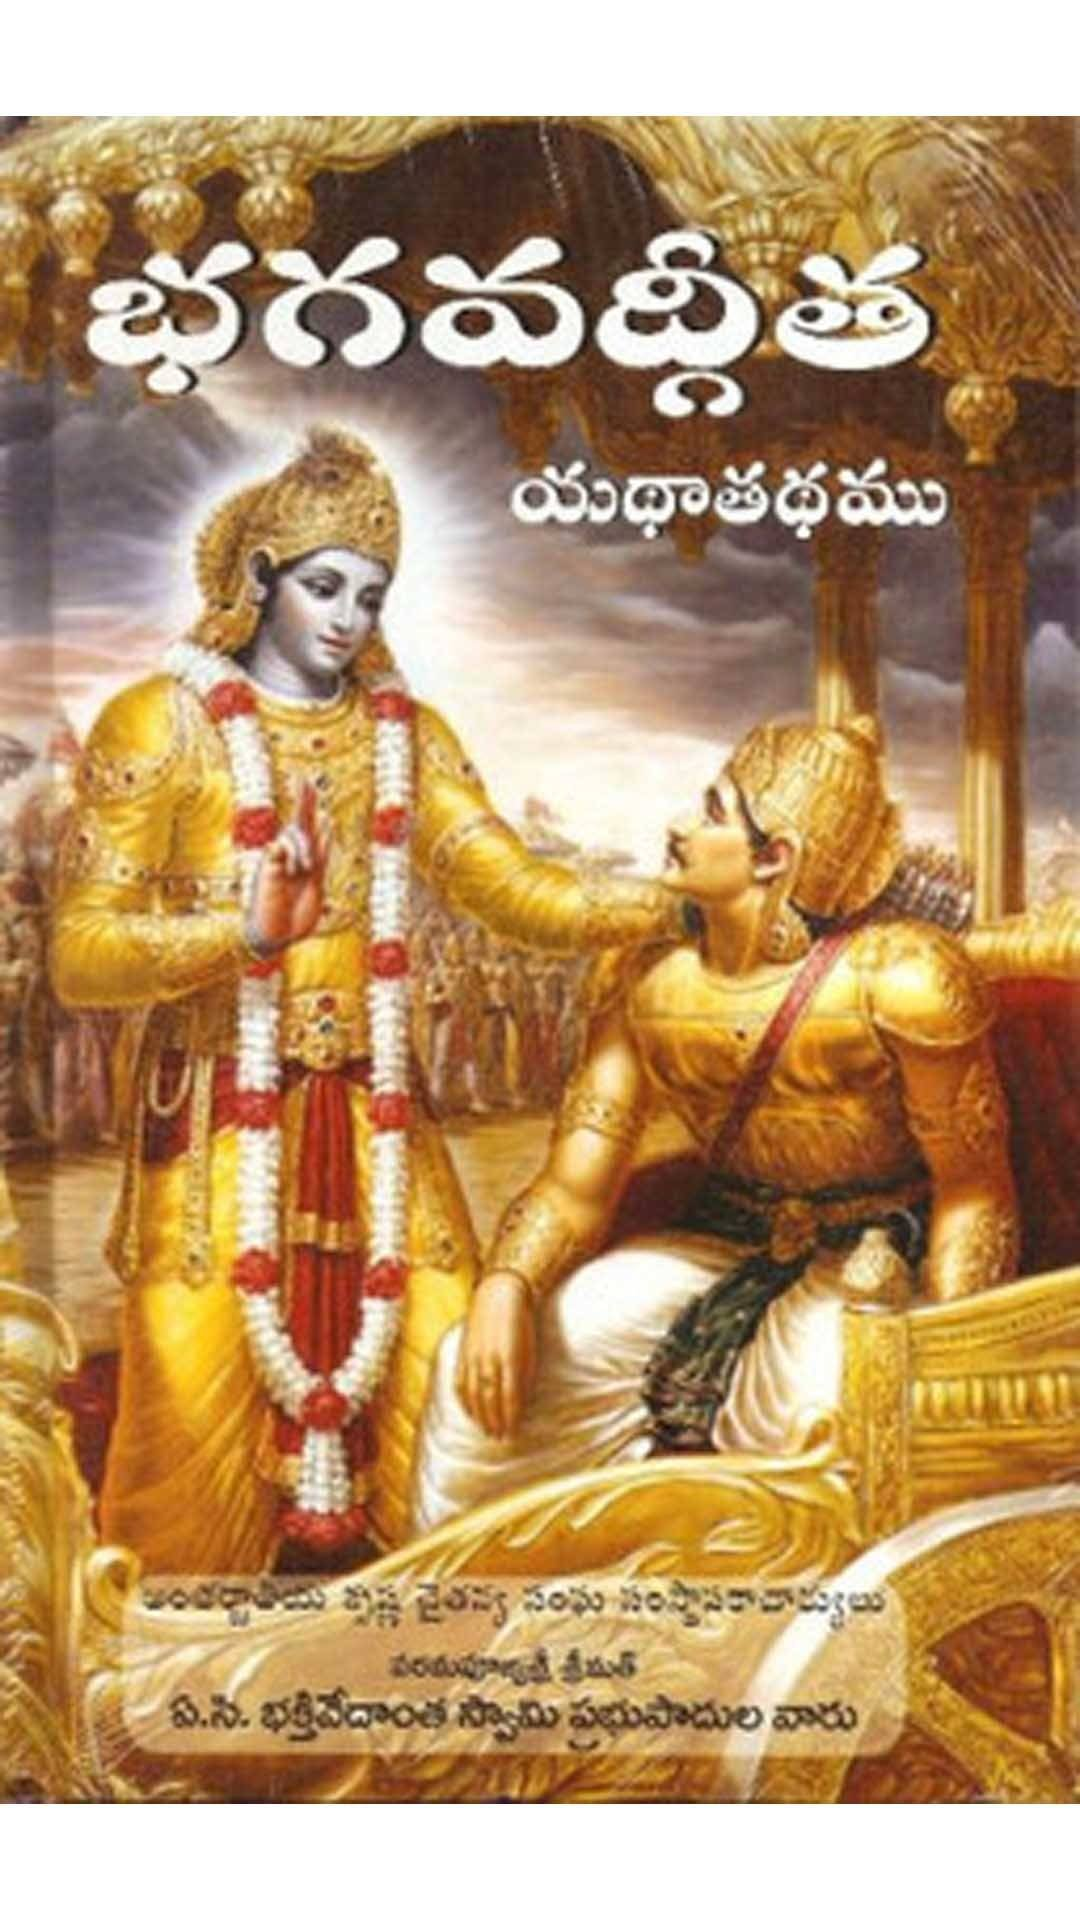 Buy Bhagavad Gita As It Is Telugu Book Online At Low Prices In